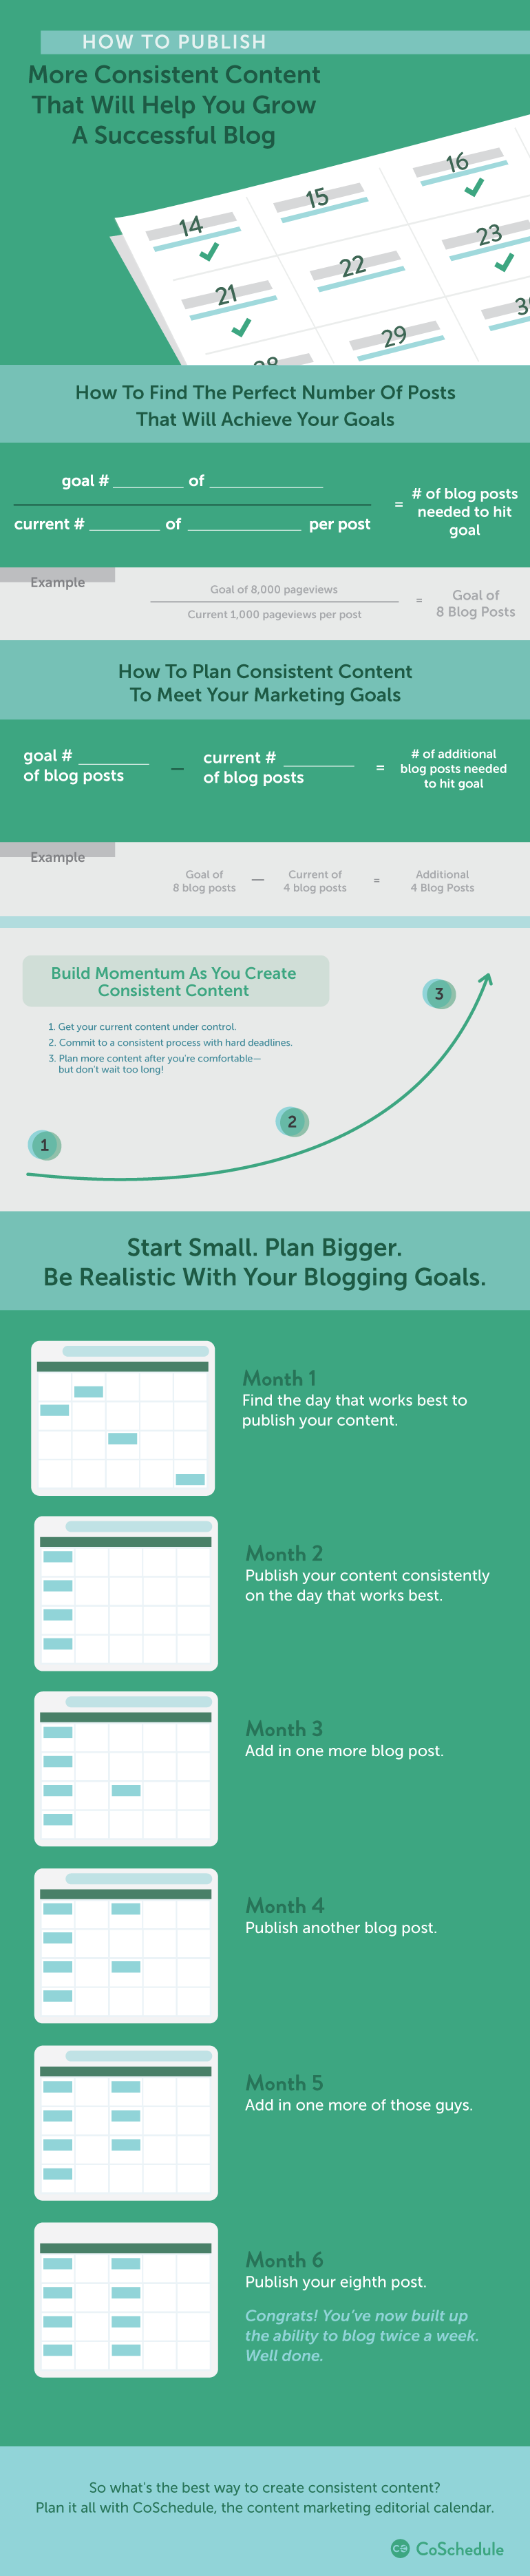 Complete guide: How To Publish More Consistent Content That Will Help You Grow A Successful Blog